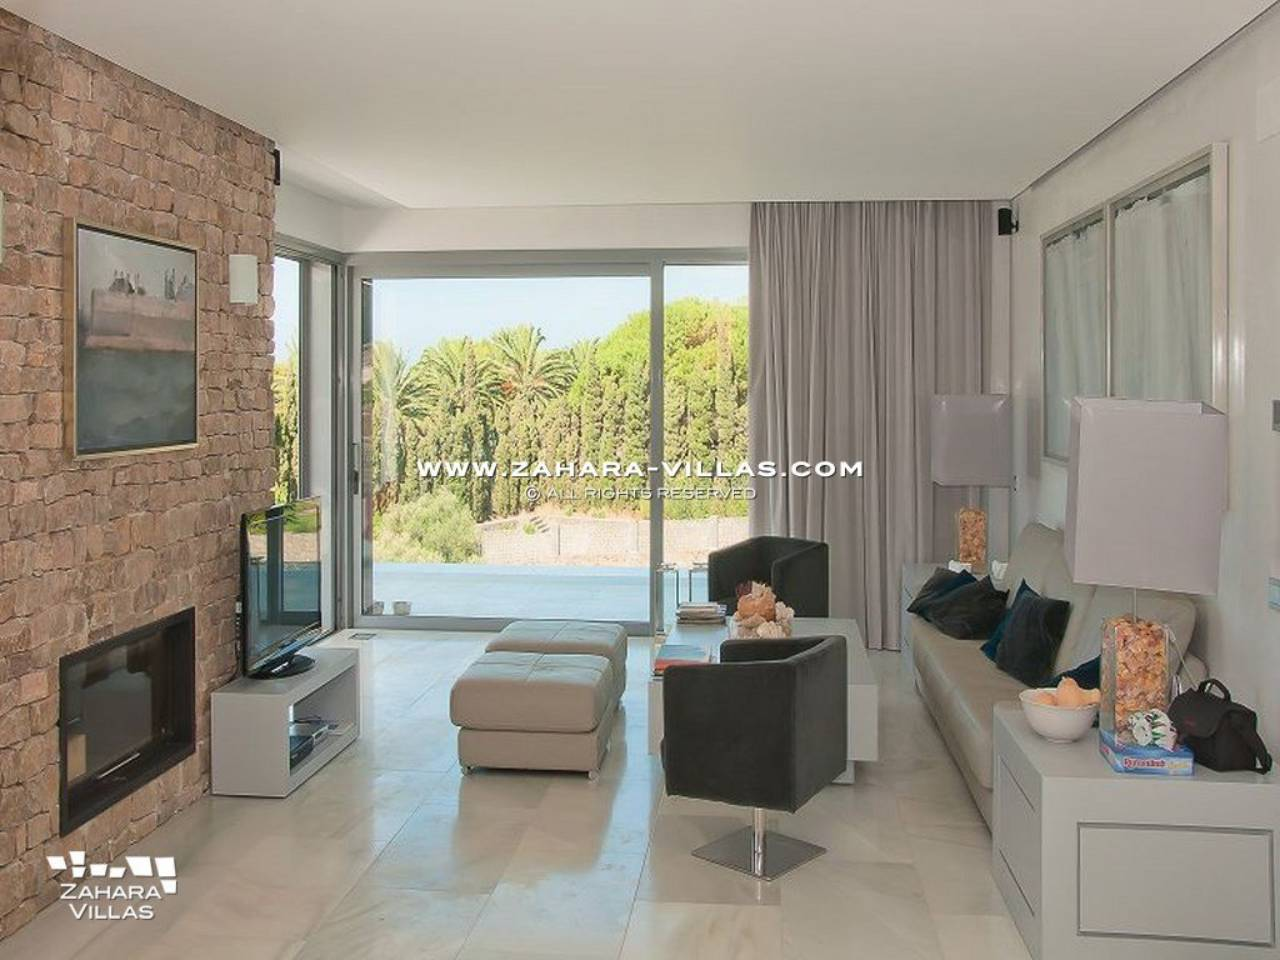 Imagen 7 de Wonderful Villa for sale with sea views in the beach Los Alemanes